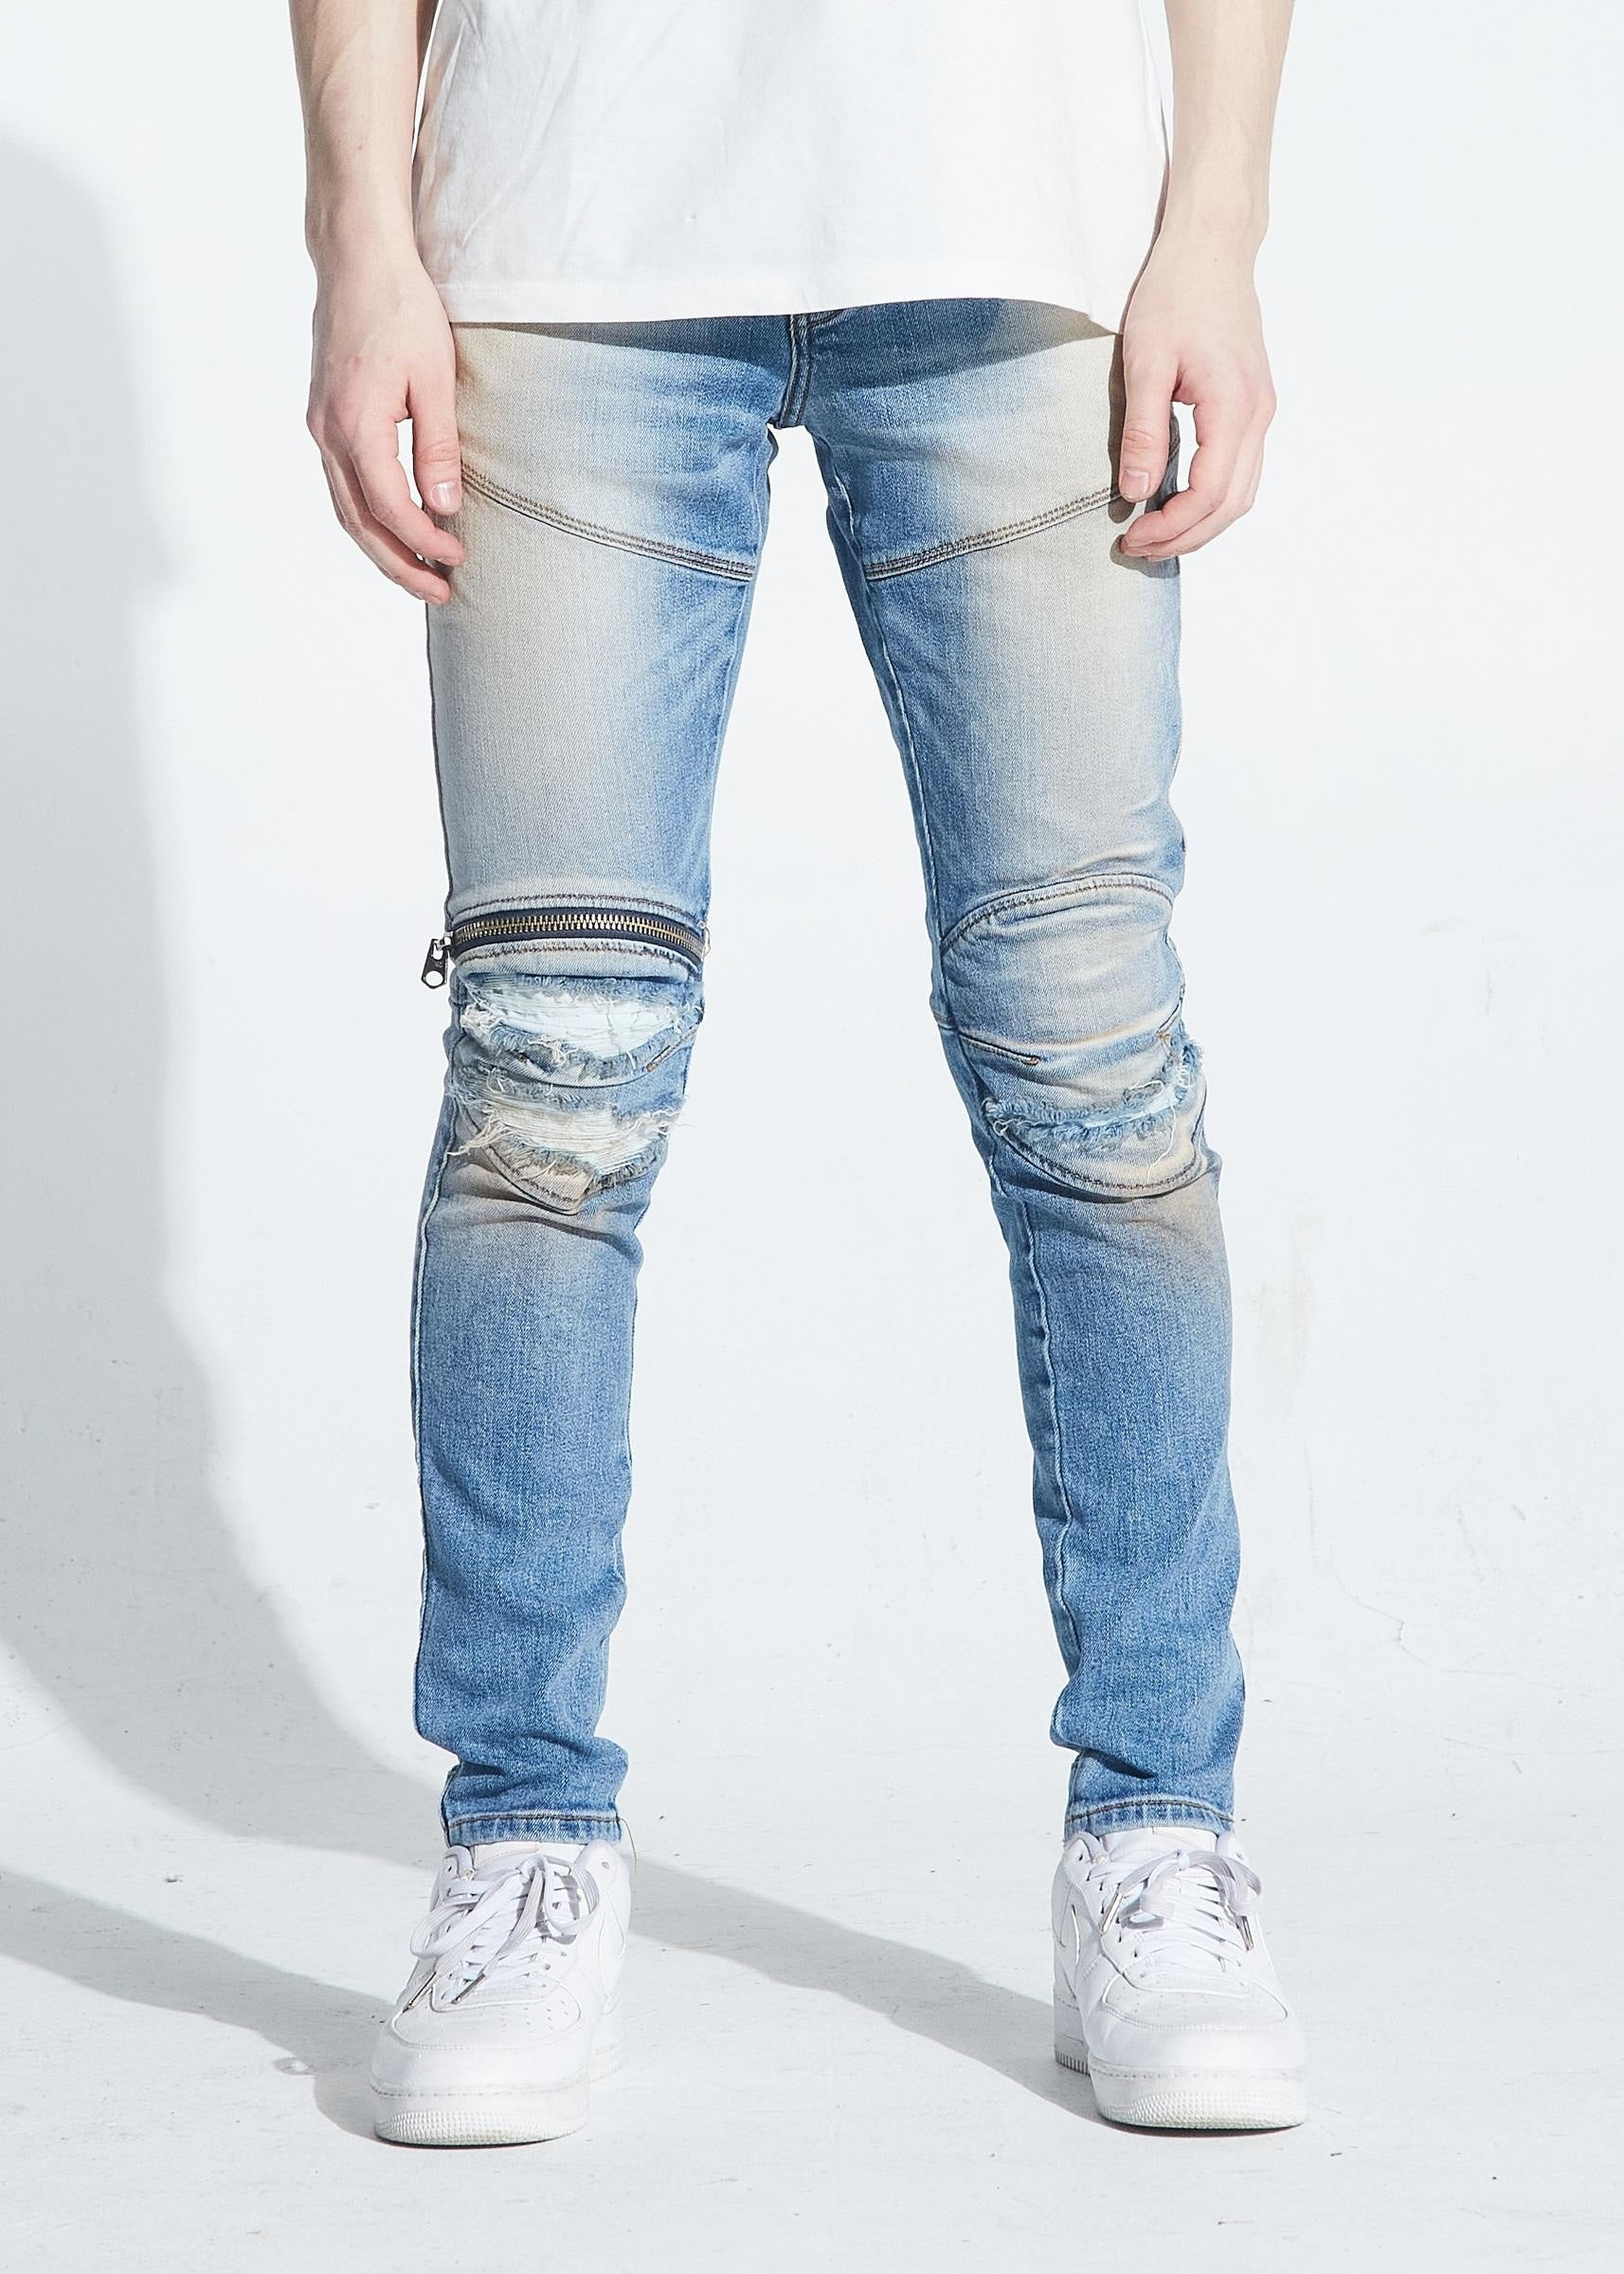 Bart Zipper Blue Denim (Lt. Wash) / C2